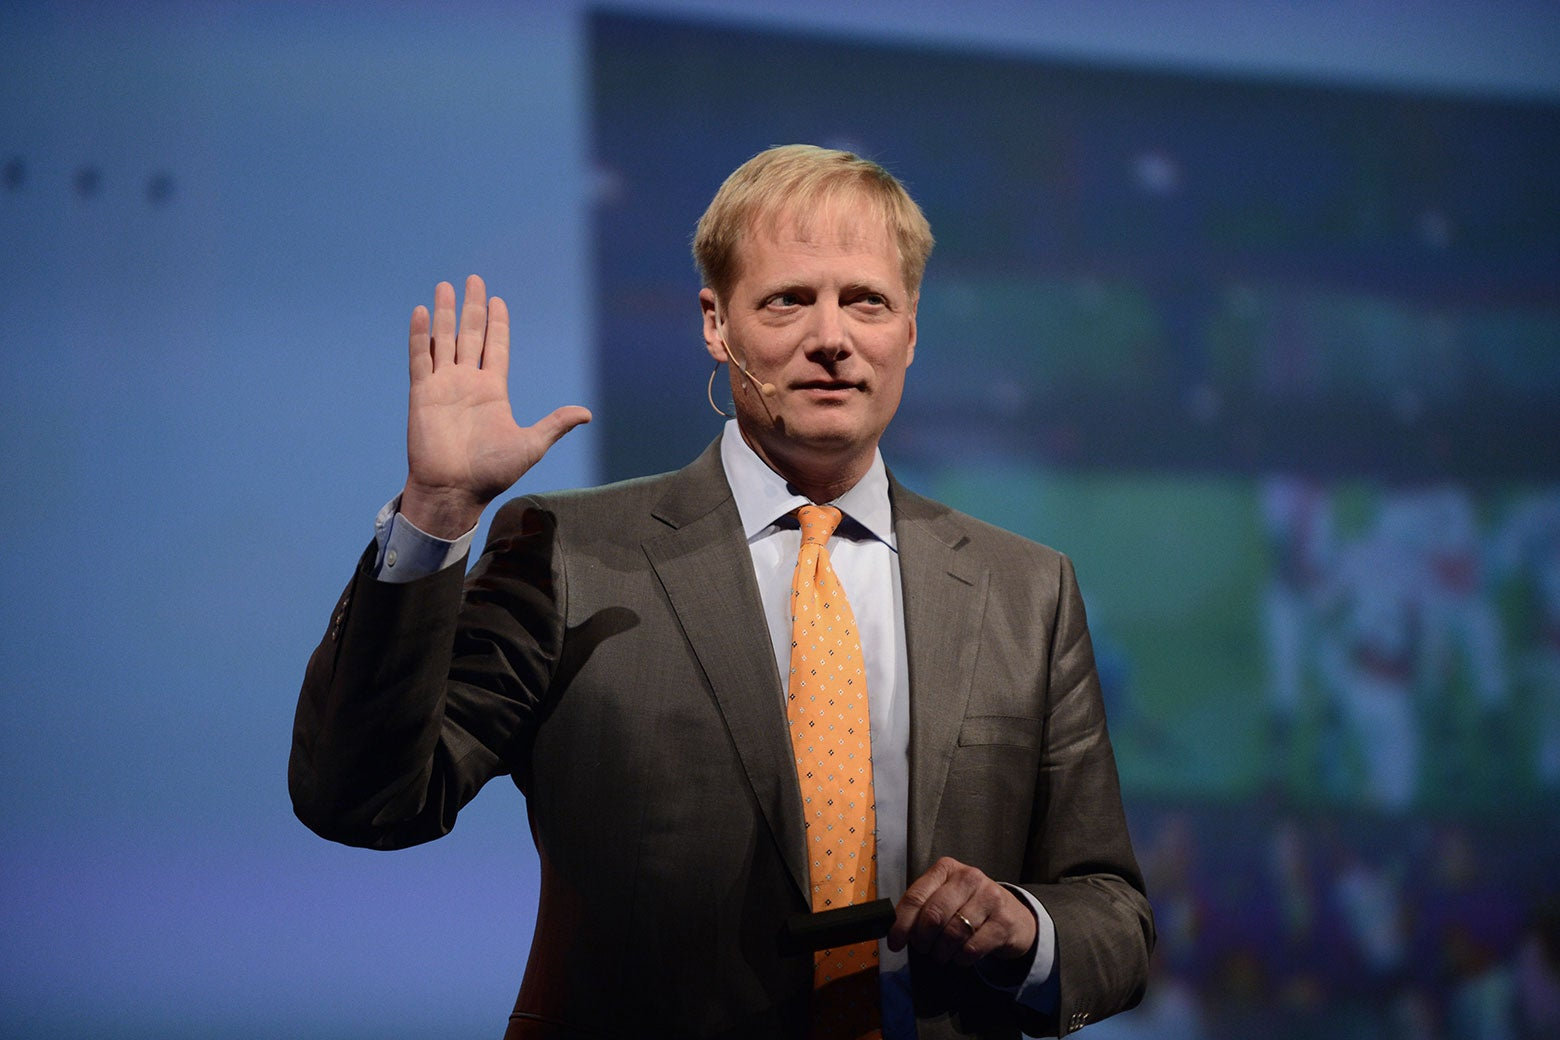 Brian Wansink raises a hand during the 2013 Discovery Vitality Summit in Johannesburg, South Africa.